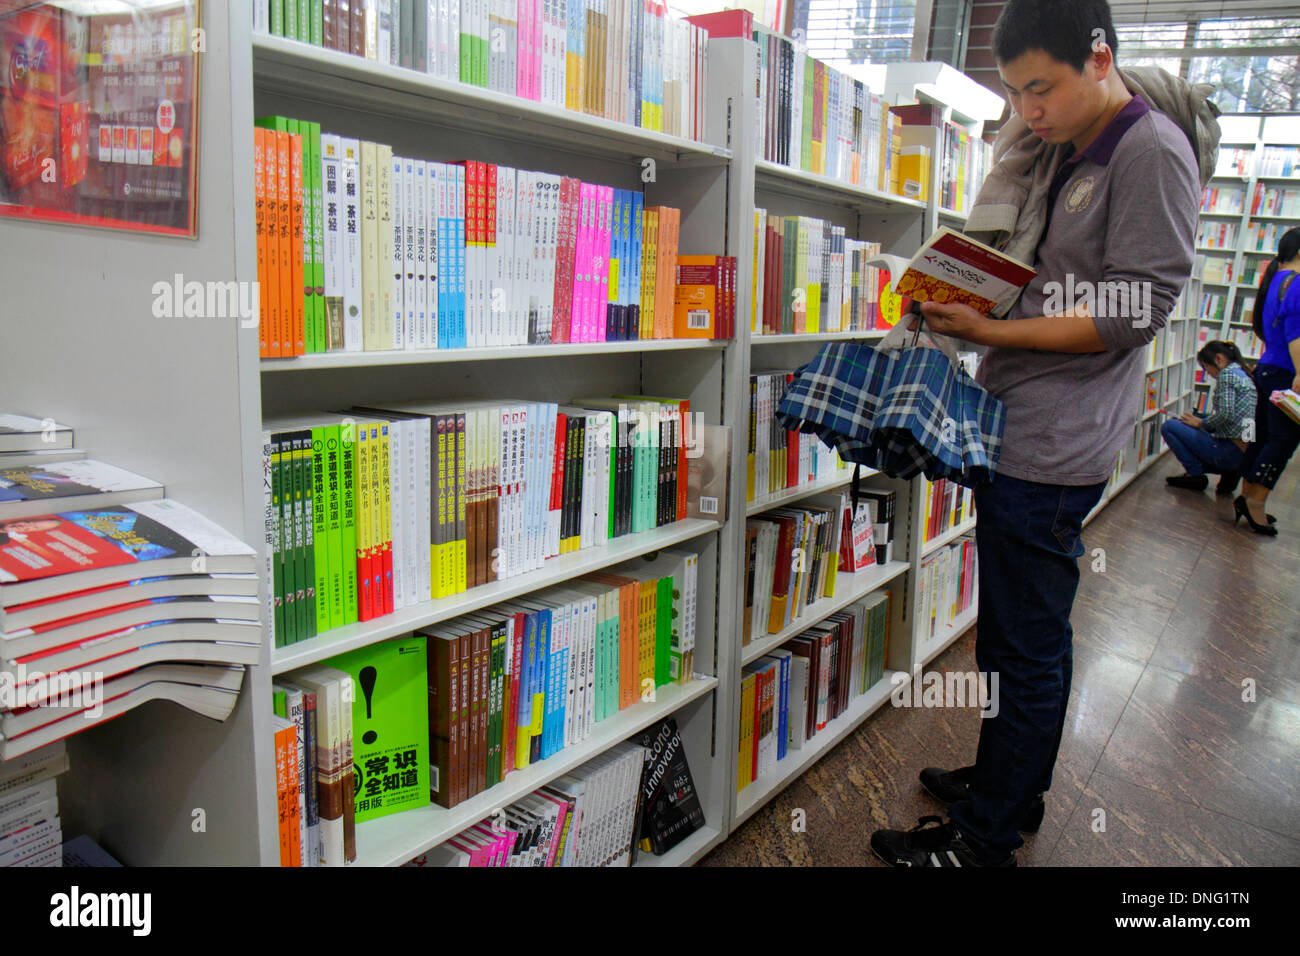 men-inside-an-adult-bookstore